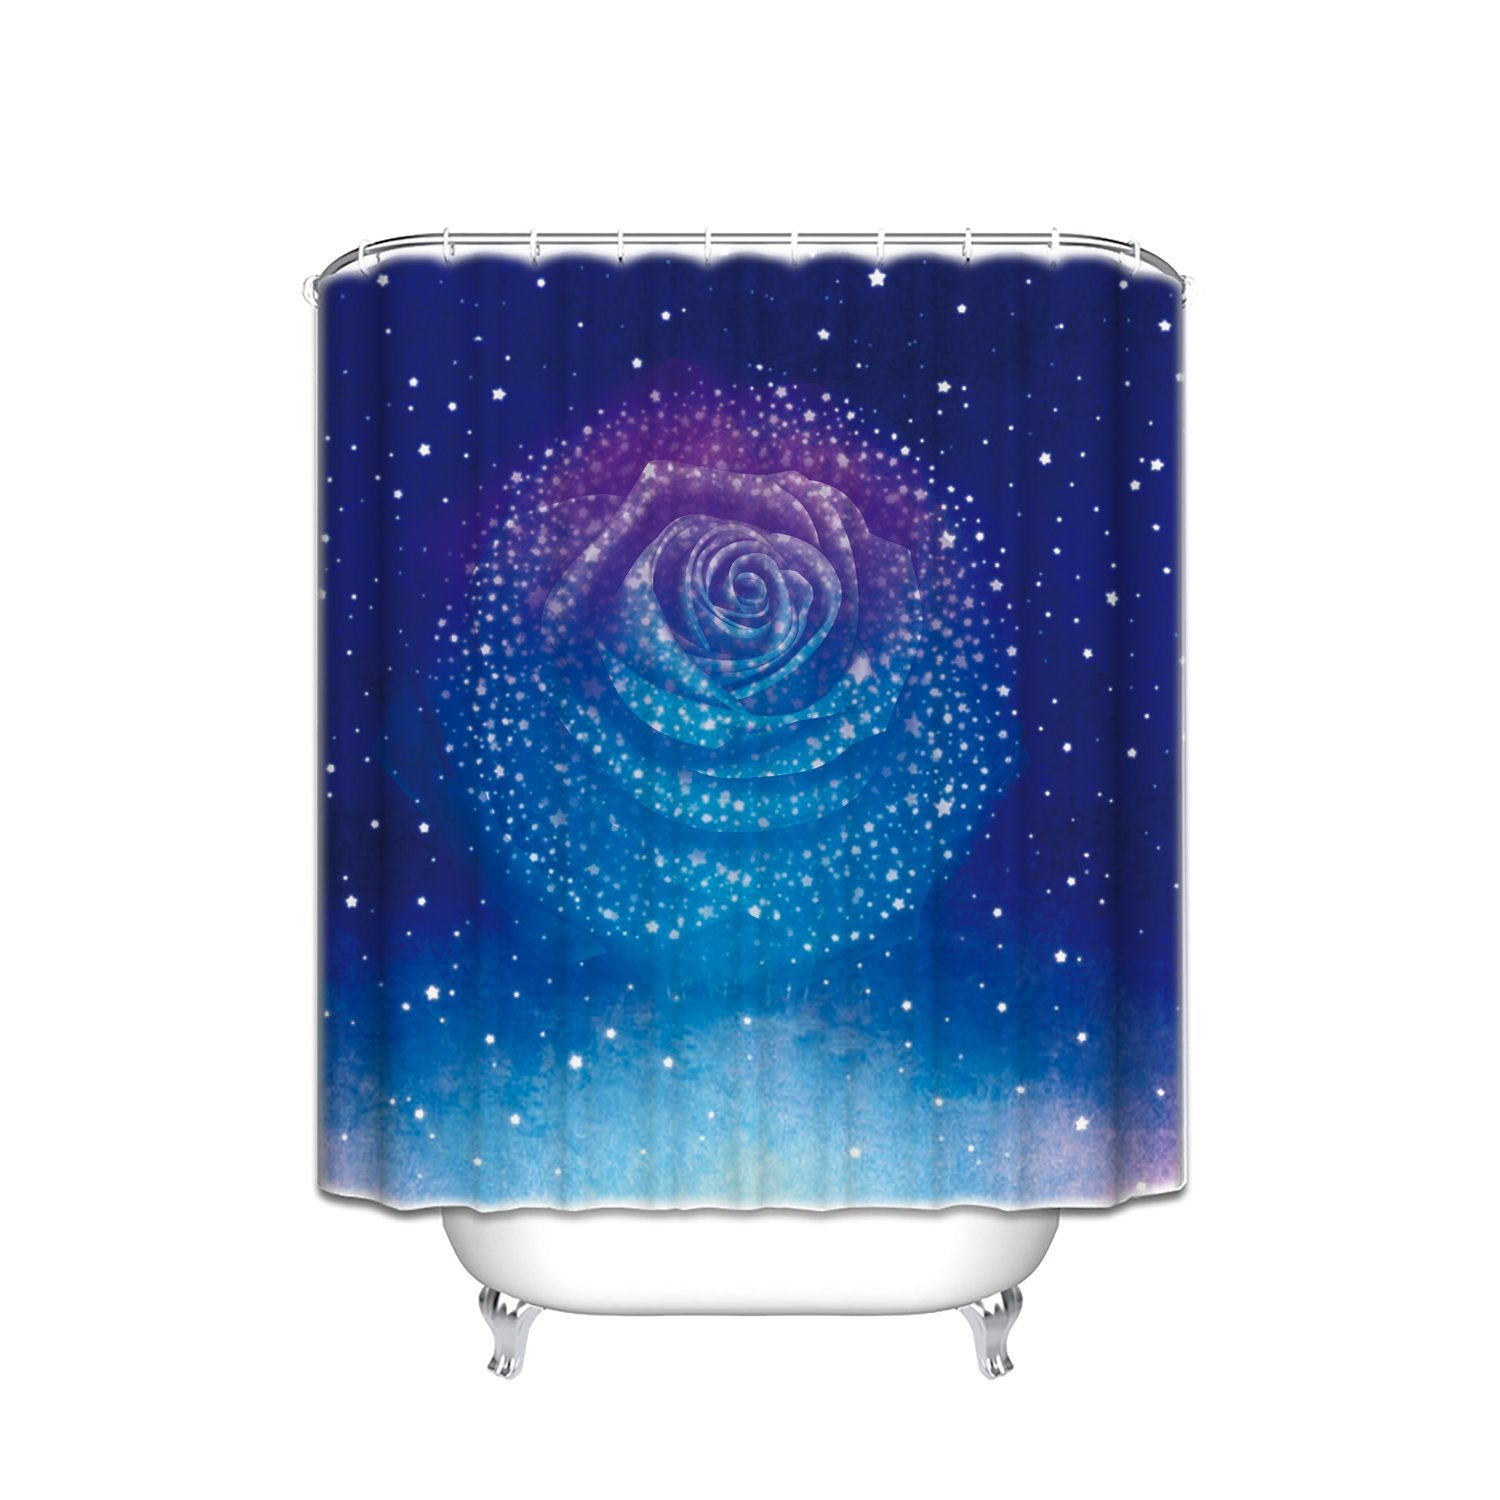 Romantic shower curtain - Starry Night Make Rose Shower Curtain Romantic Shower Curtain Decor Your Home 48x72in